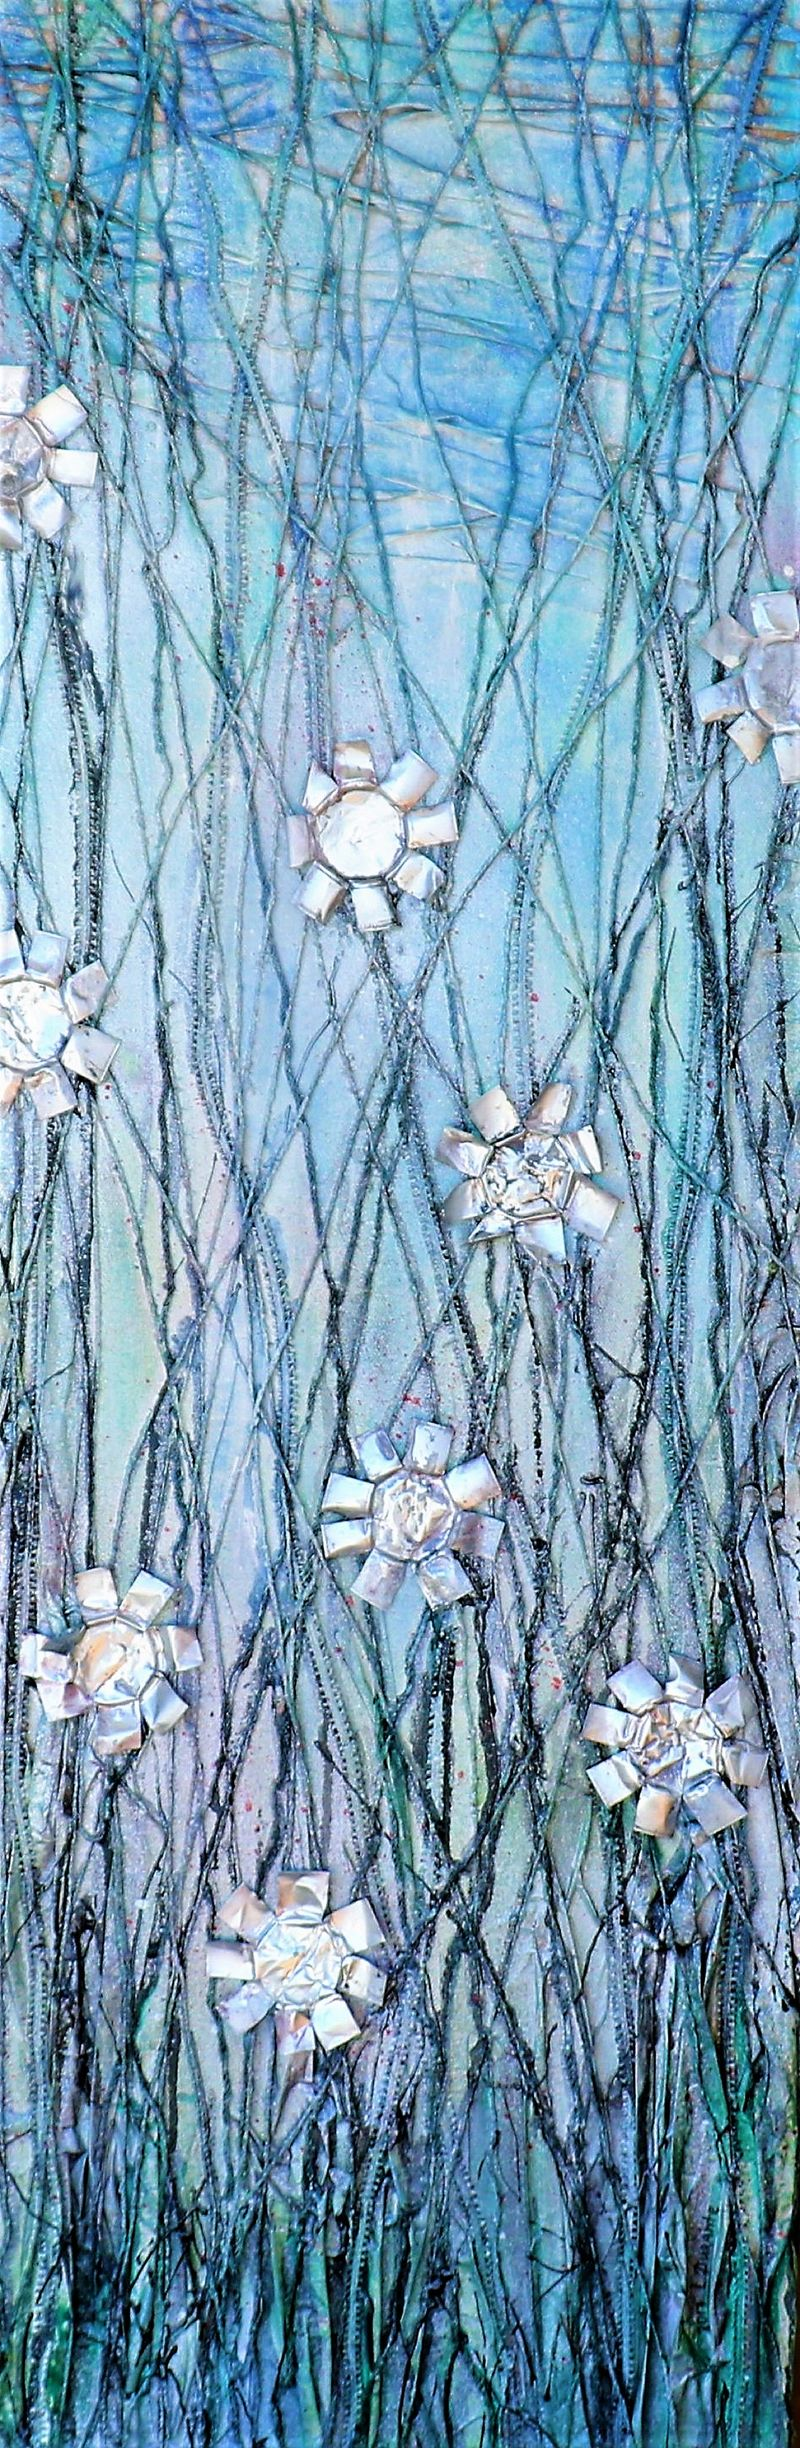 Urban nature (Blue)  - a Paint by Liudmyla Durante